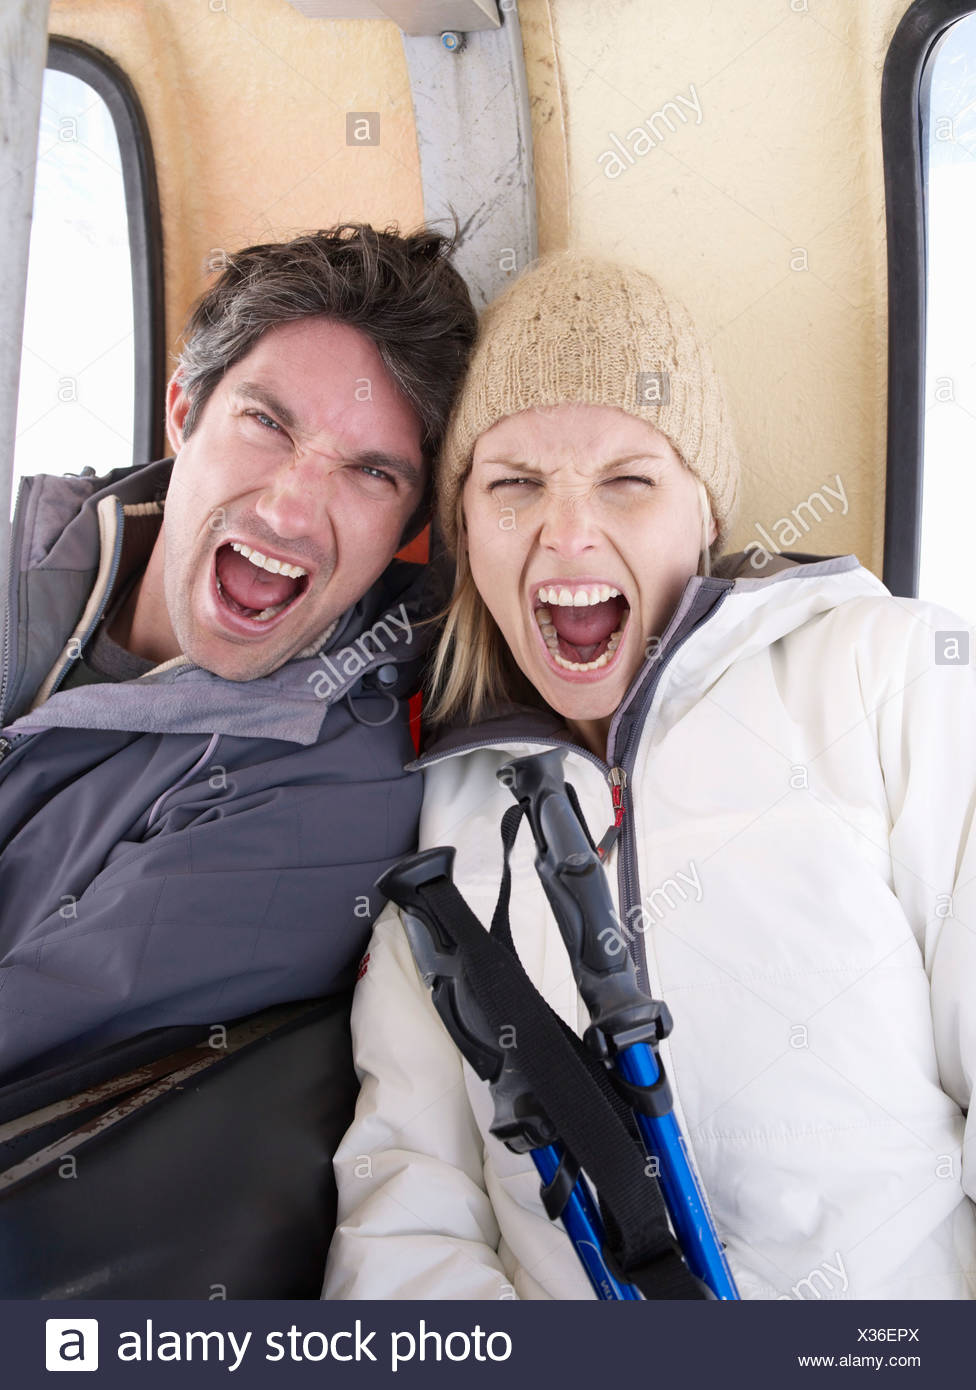 couple screaming at viewer - Stock Image